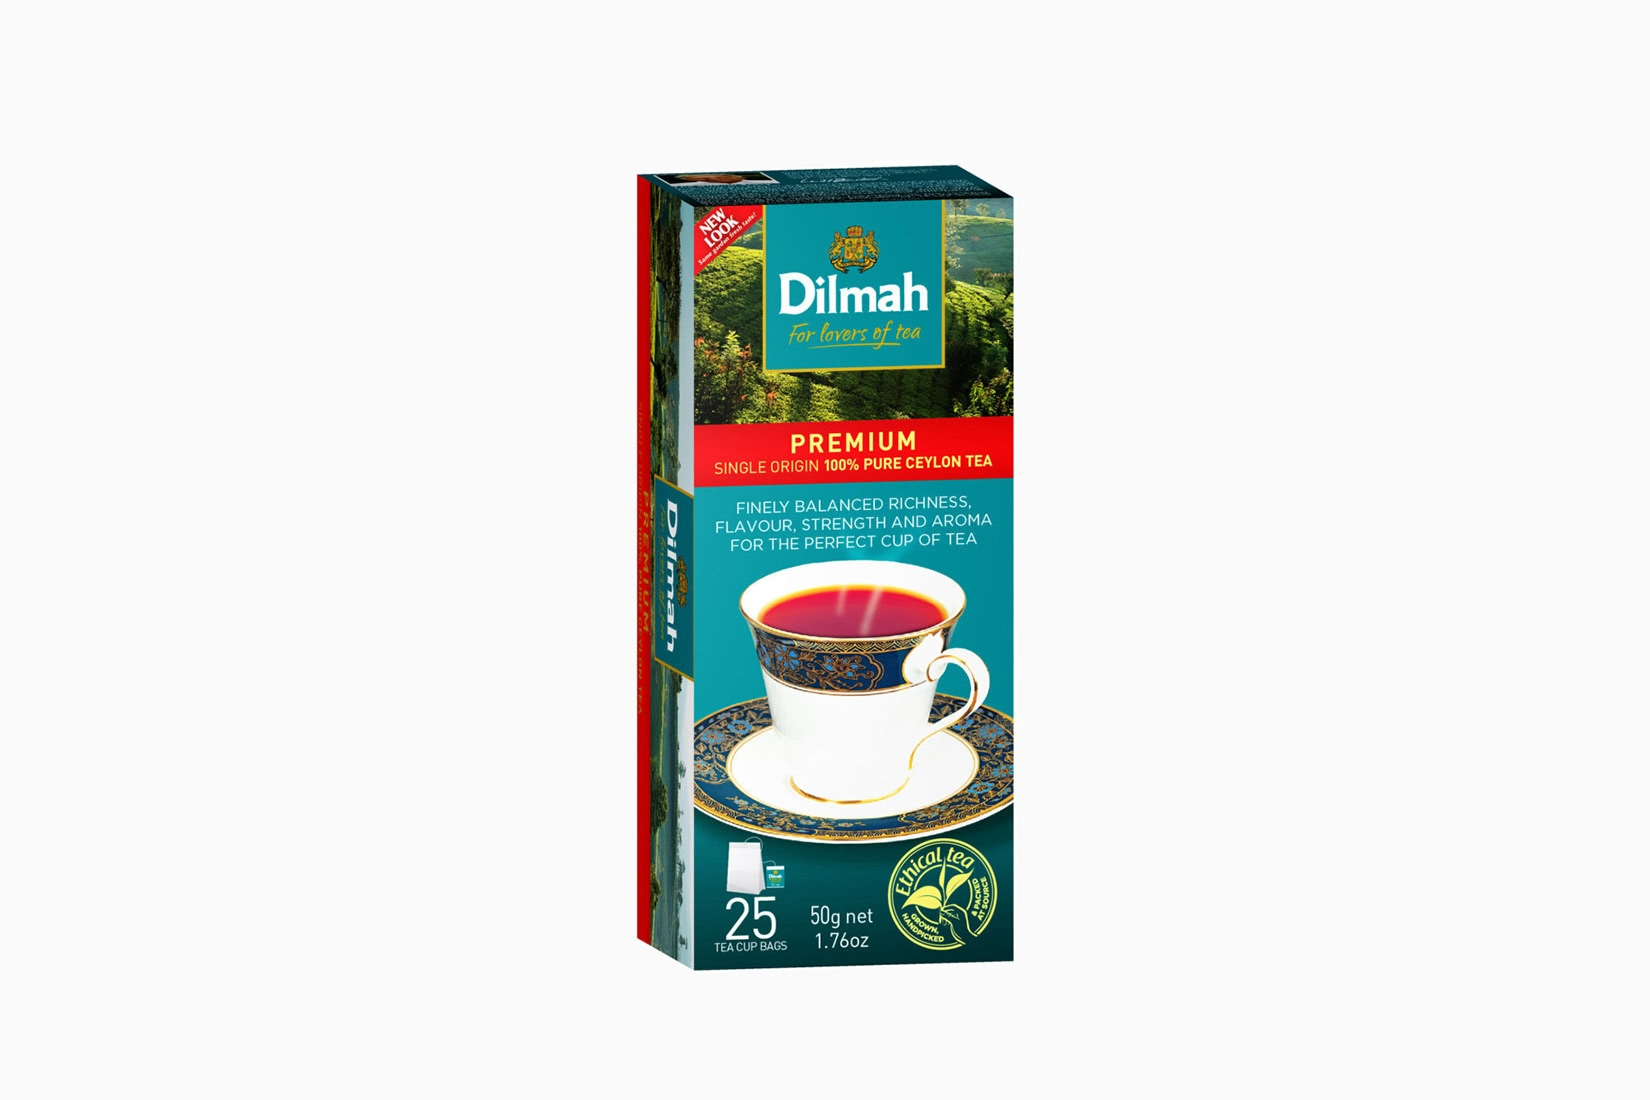 best tea brands dilmah premium ceylon - Luxe Digital